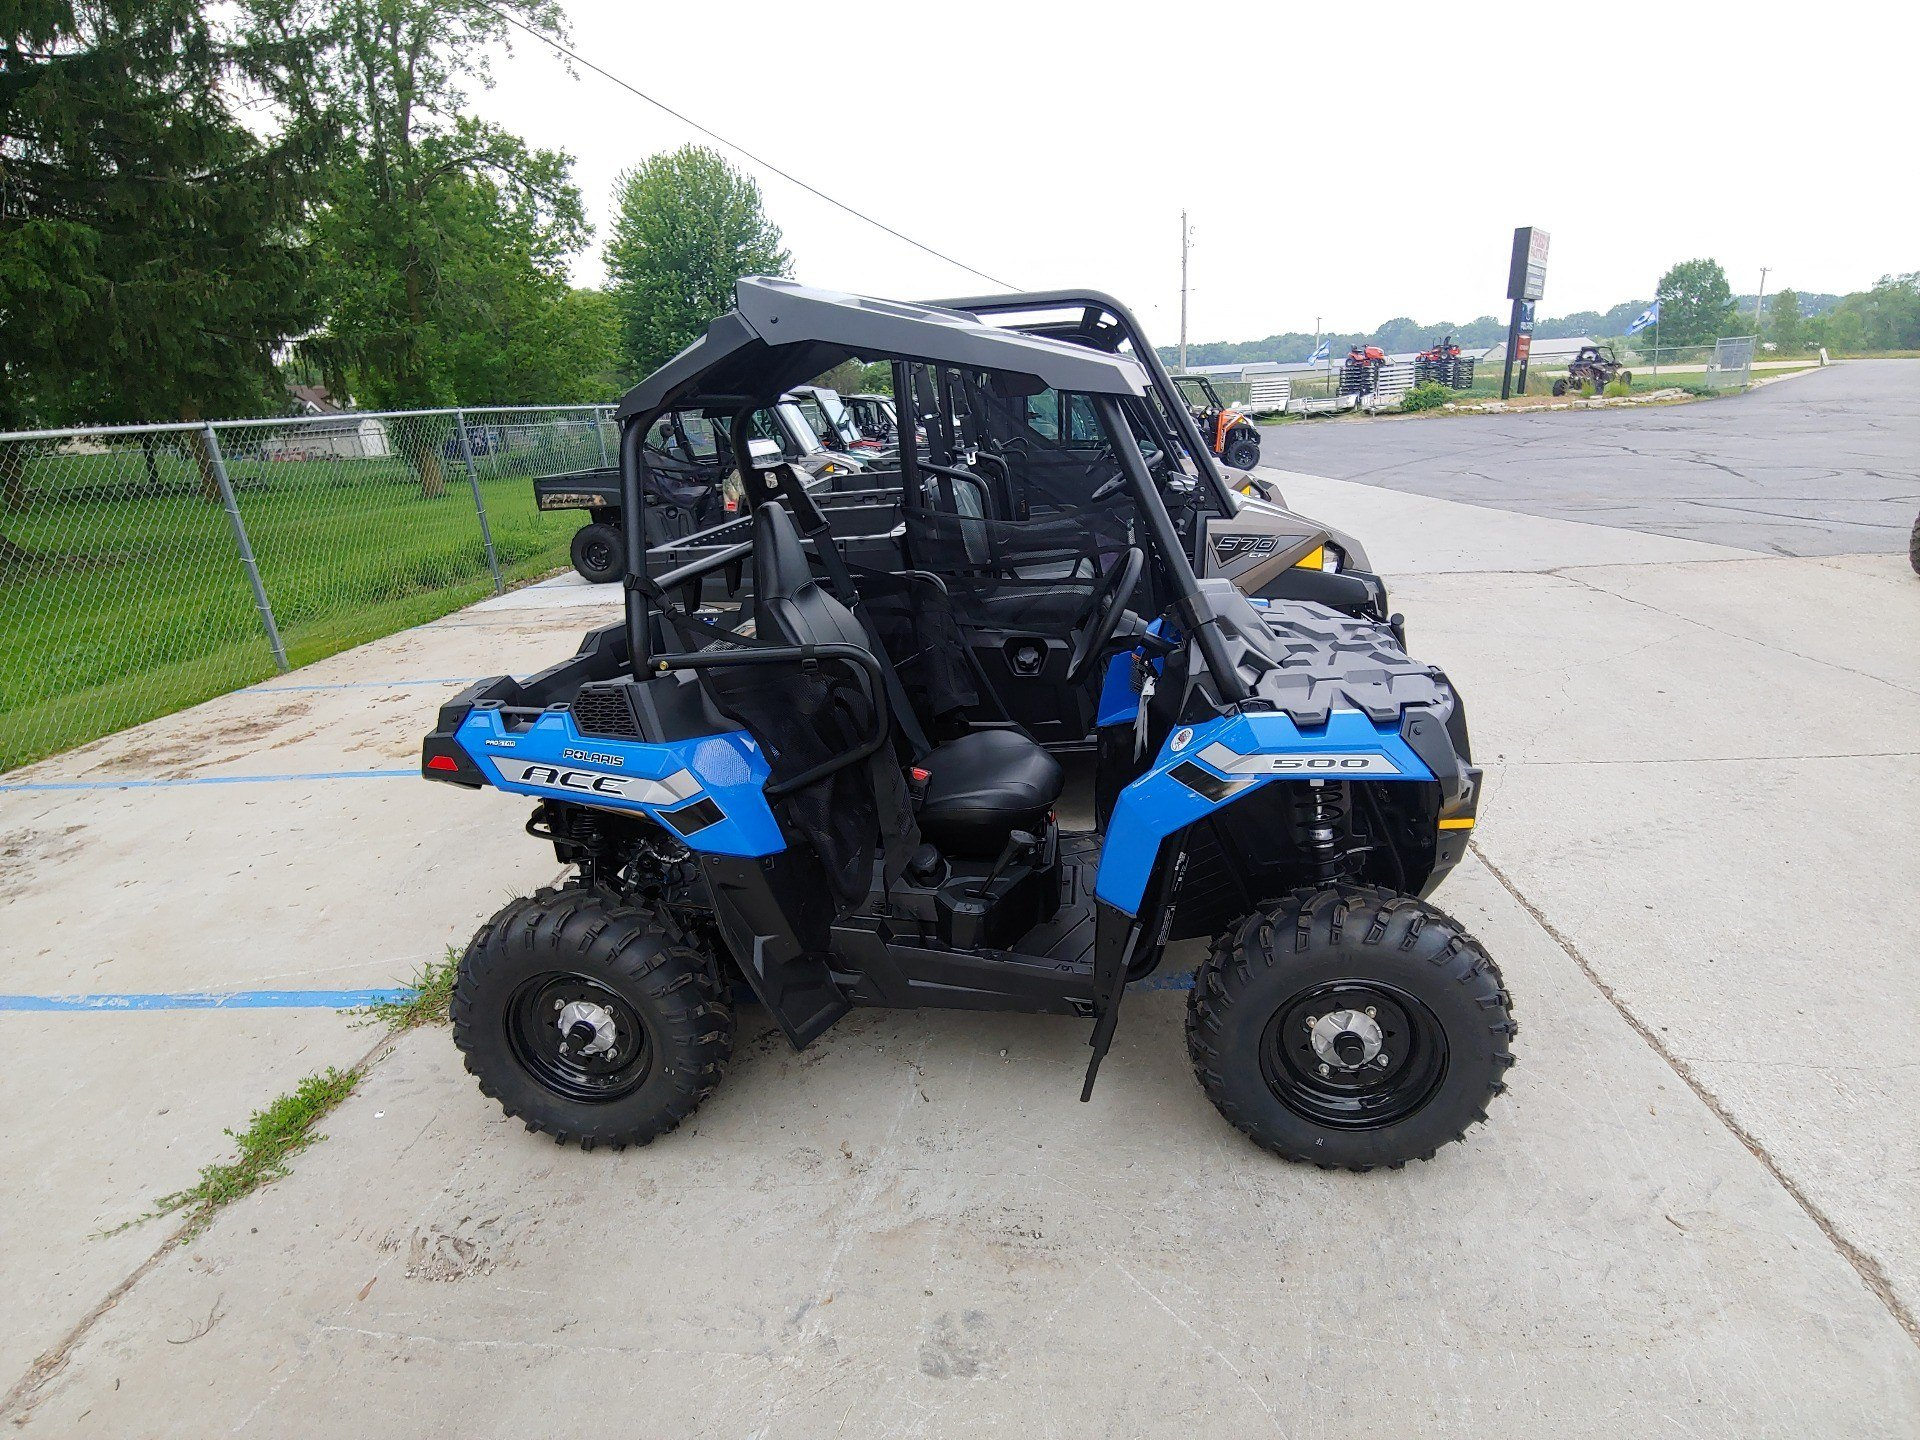 2019 Polaris Ace 500 in Fond Du Lac, Wisconsin - Photo 3